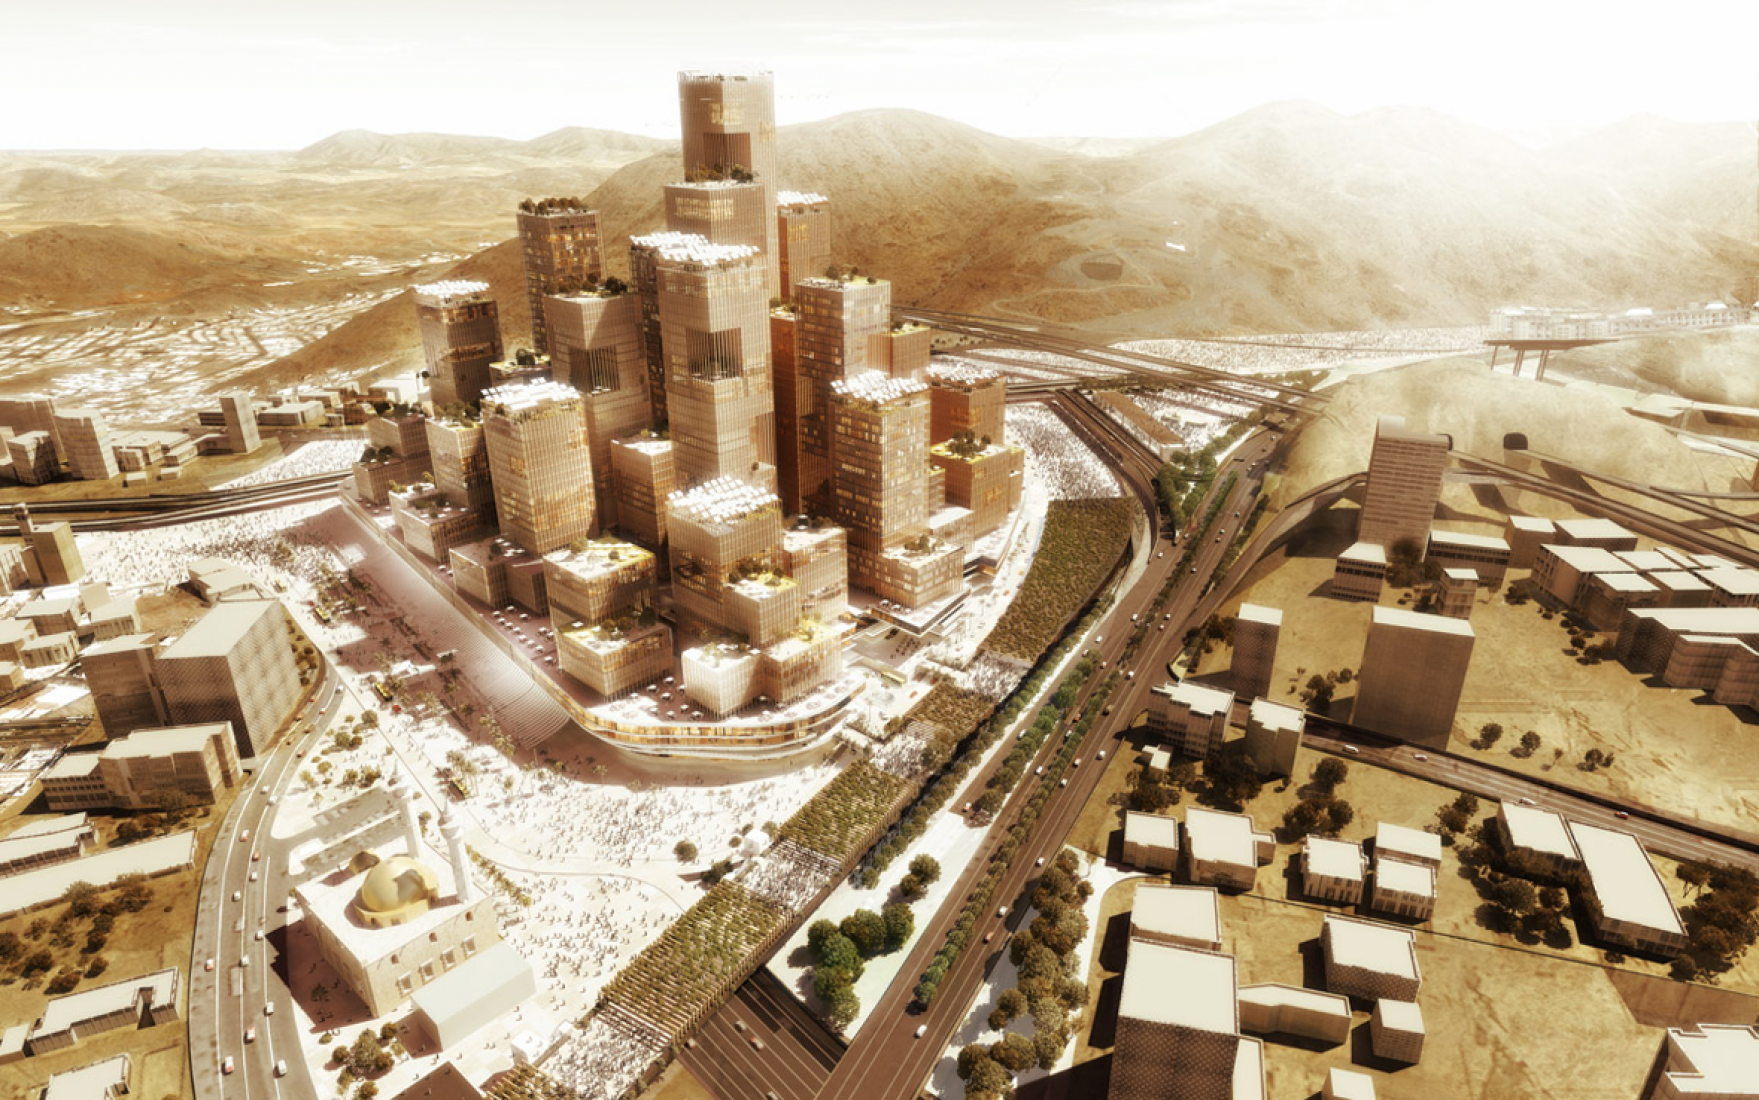 Rendering. Darb Al Mashaer. New Mecca master plan by X-Architects. Image © X-Architects